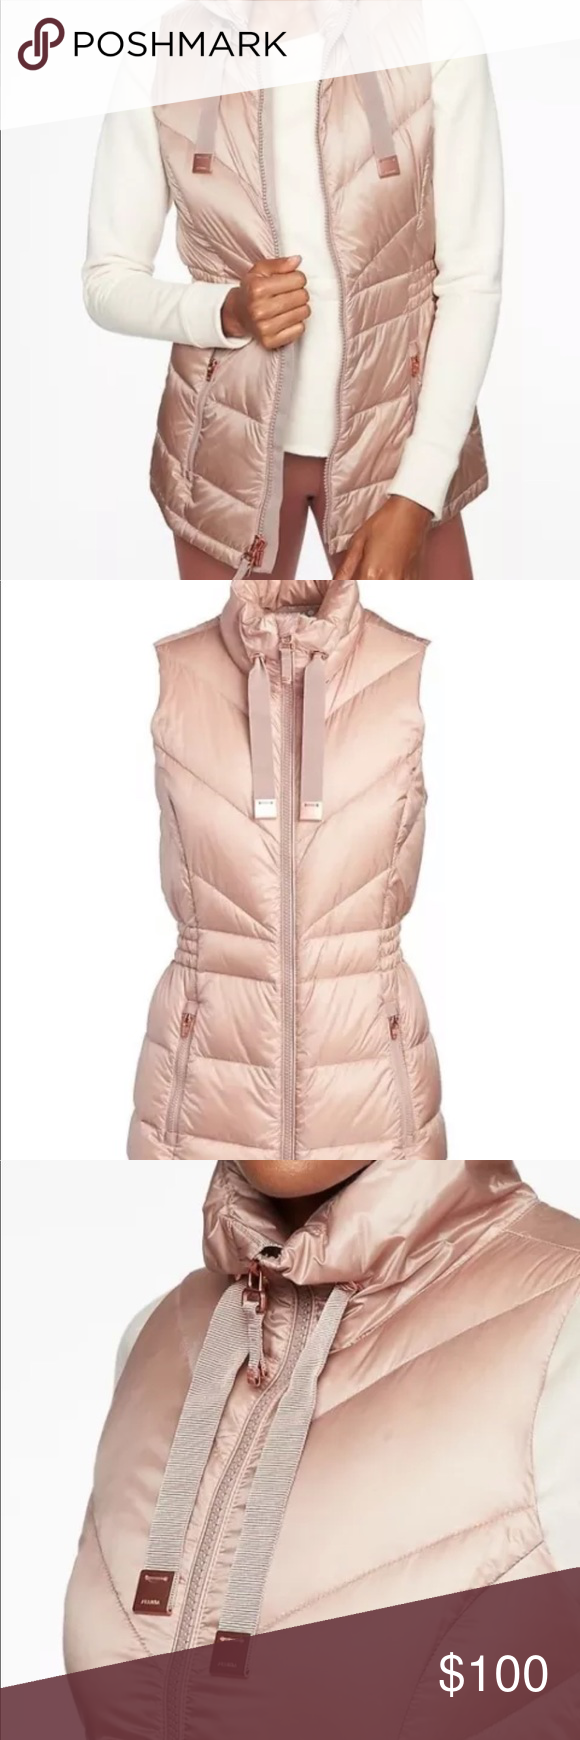 192d79375ec8 Athleta Down Peak Banner Vest XS in nouveau rose Athleta Banner Peak Down  Vest in nouveau rose...New with tag....retail  158 Zip pockets secure your  ...